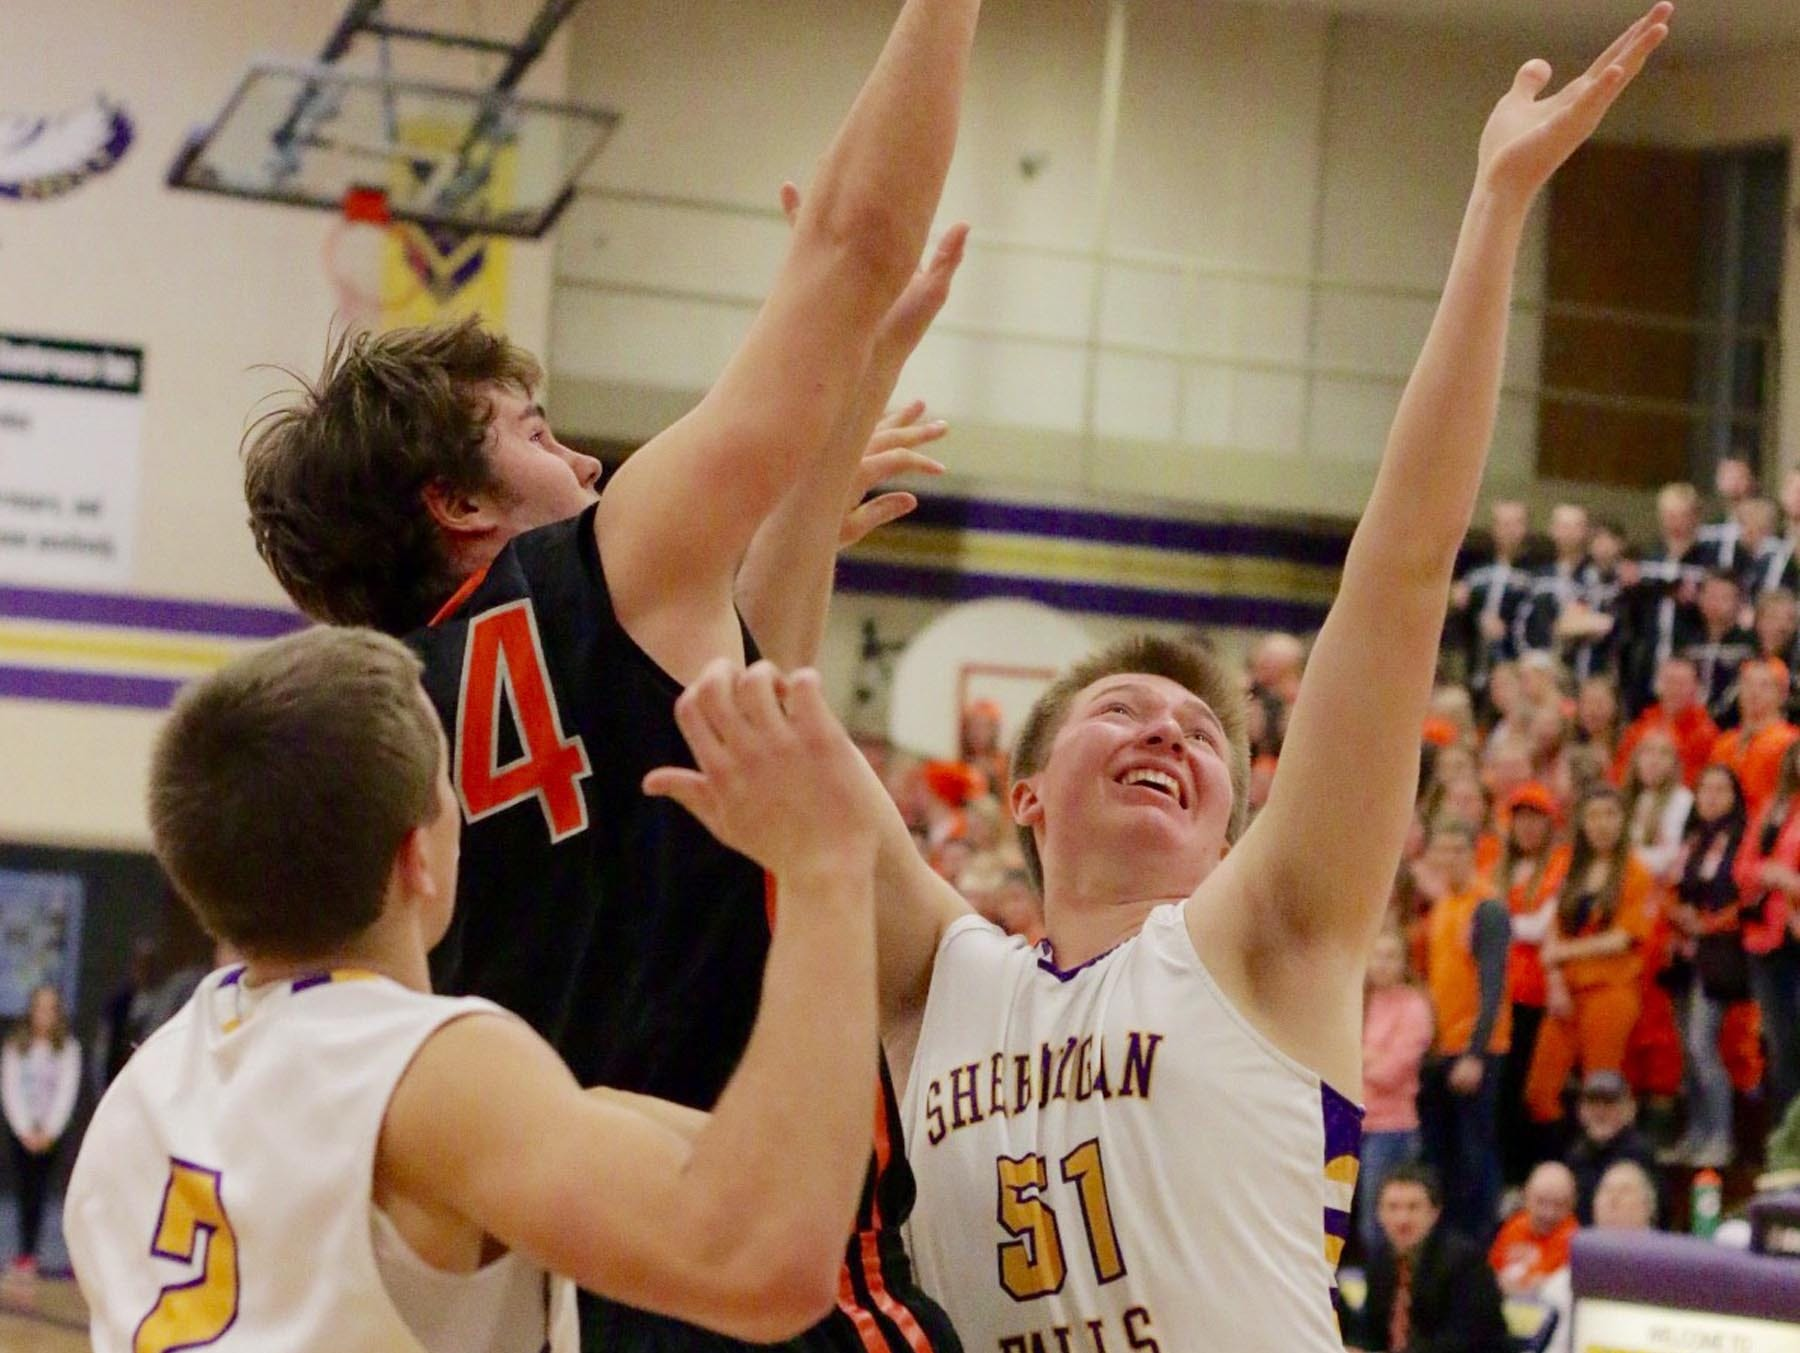 Center Alex Atonie (51) is one of a bevy of returning players on the Sheboygan Falls roster.